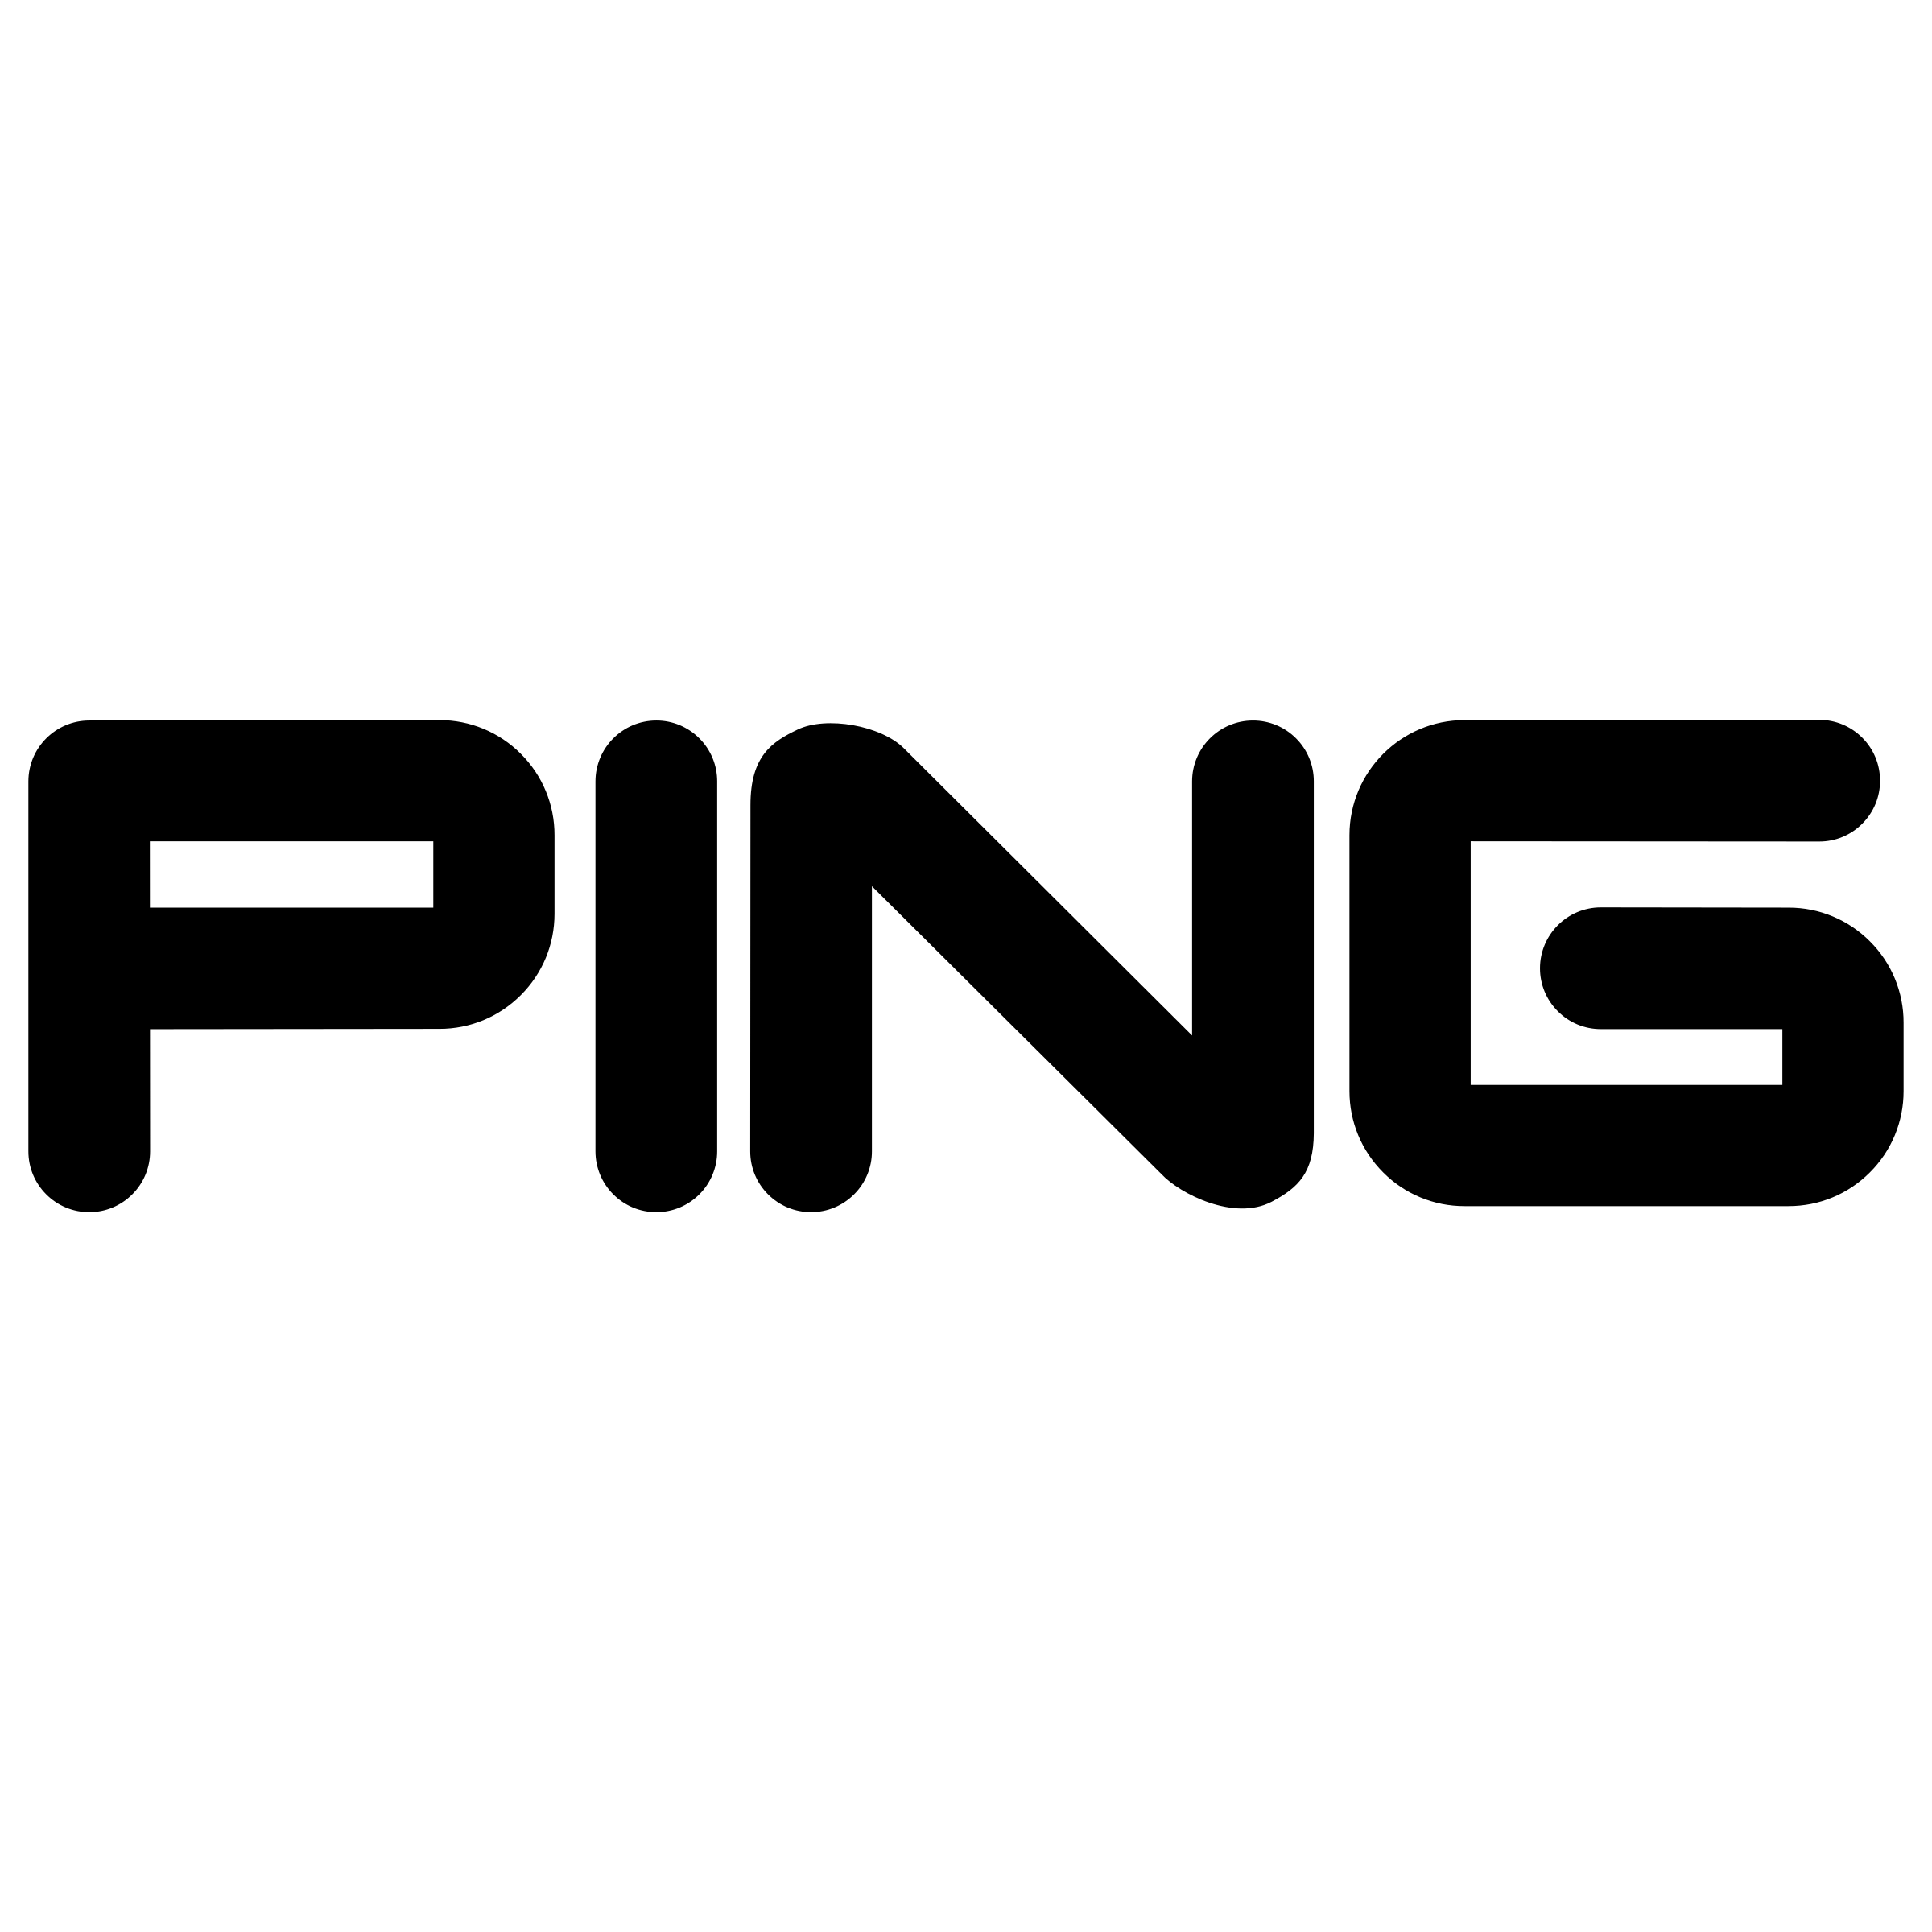 ping logo png transparent